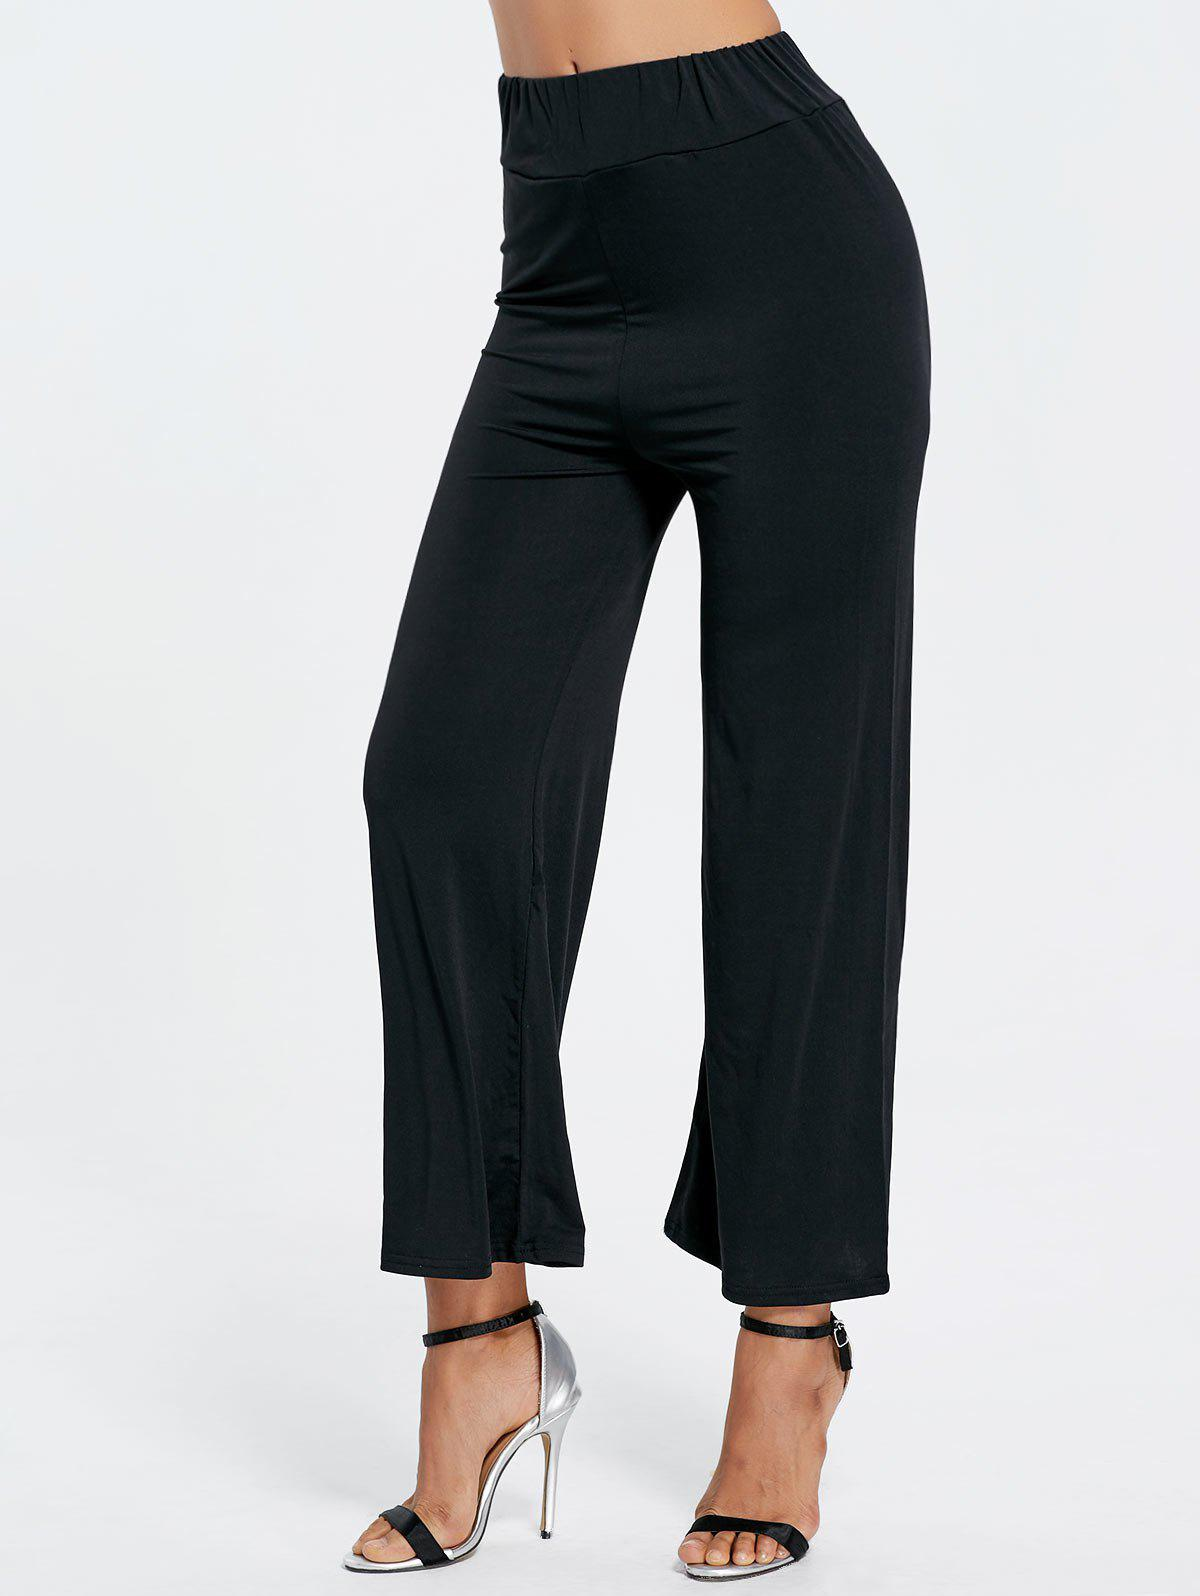 High Waisted Ninth Wide Leg PantsWOMEN<br><br>Size: L; Color: BLACK; Style: Fashion; Length: Normal; Material: Polyester; Fit Type: Loose; Waist Type: Mid; Closure Type: Elastic Waist; Pattern Type: Solid; Pant Style: Wide Leg Pants; Weight: 0.2670kg; Package Contents: 1 x Pants;